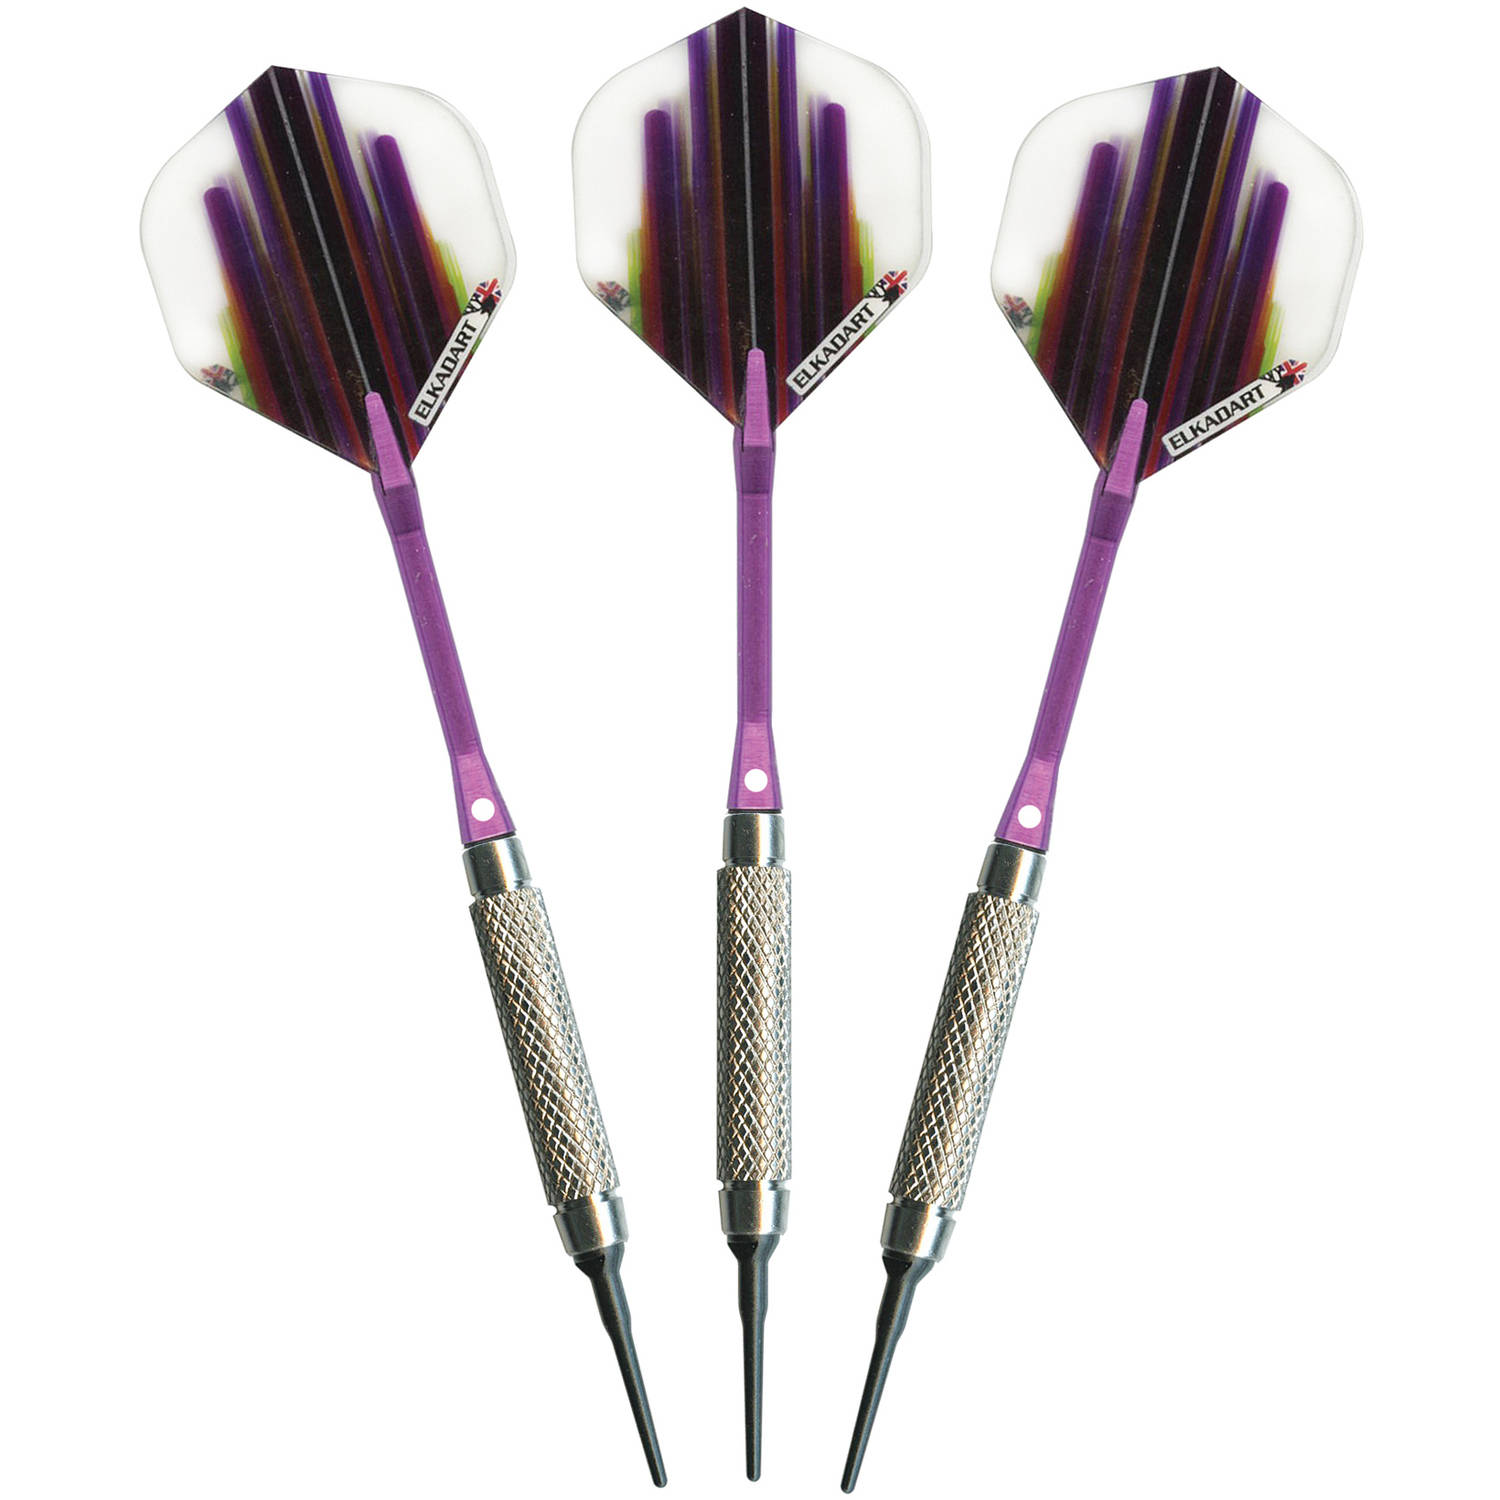 Elkadart Turbo Soft Tip Darts, 1 Knurled Ring 20g